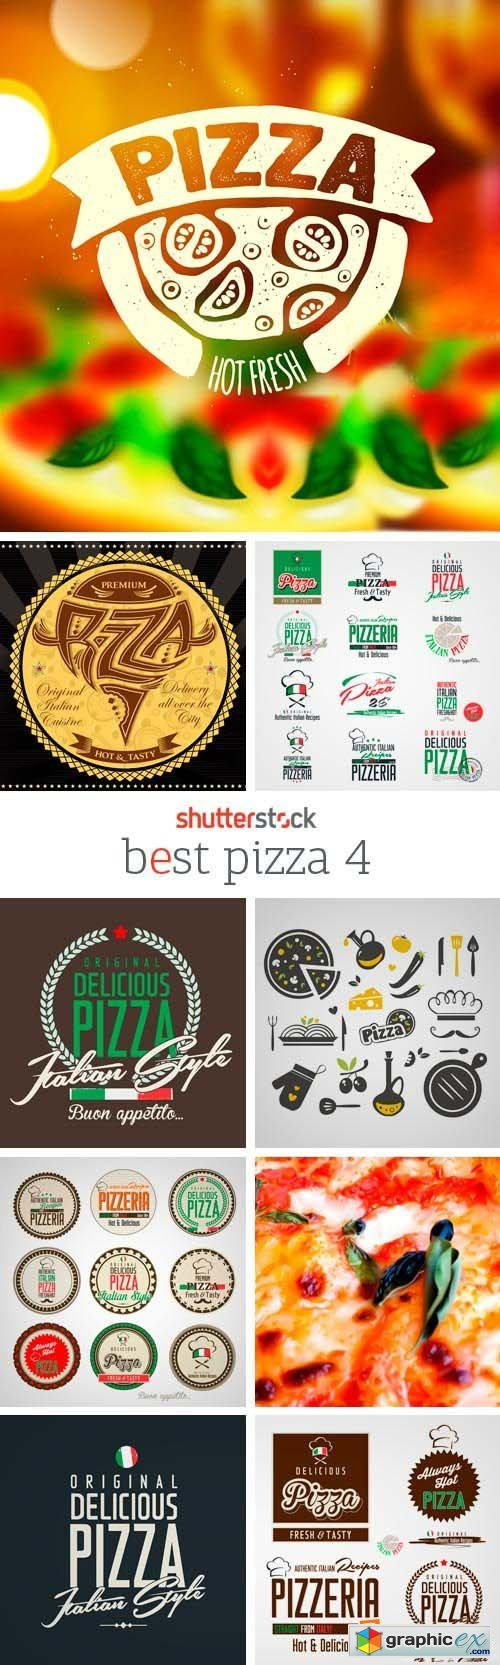 Amazing SS - Best Pizza 4, 25xEPS